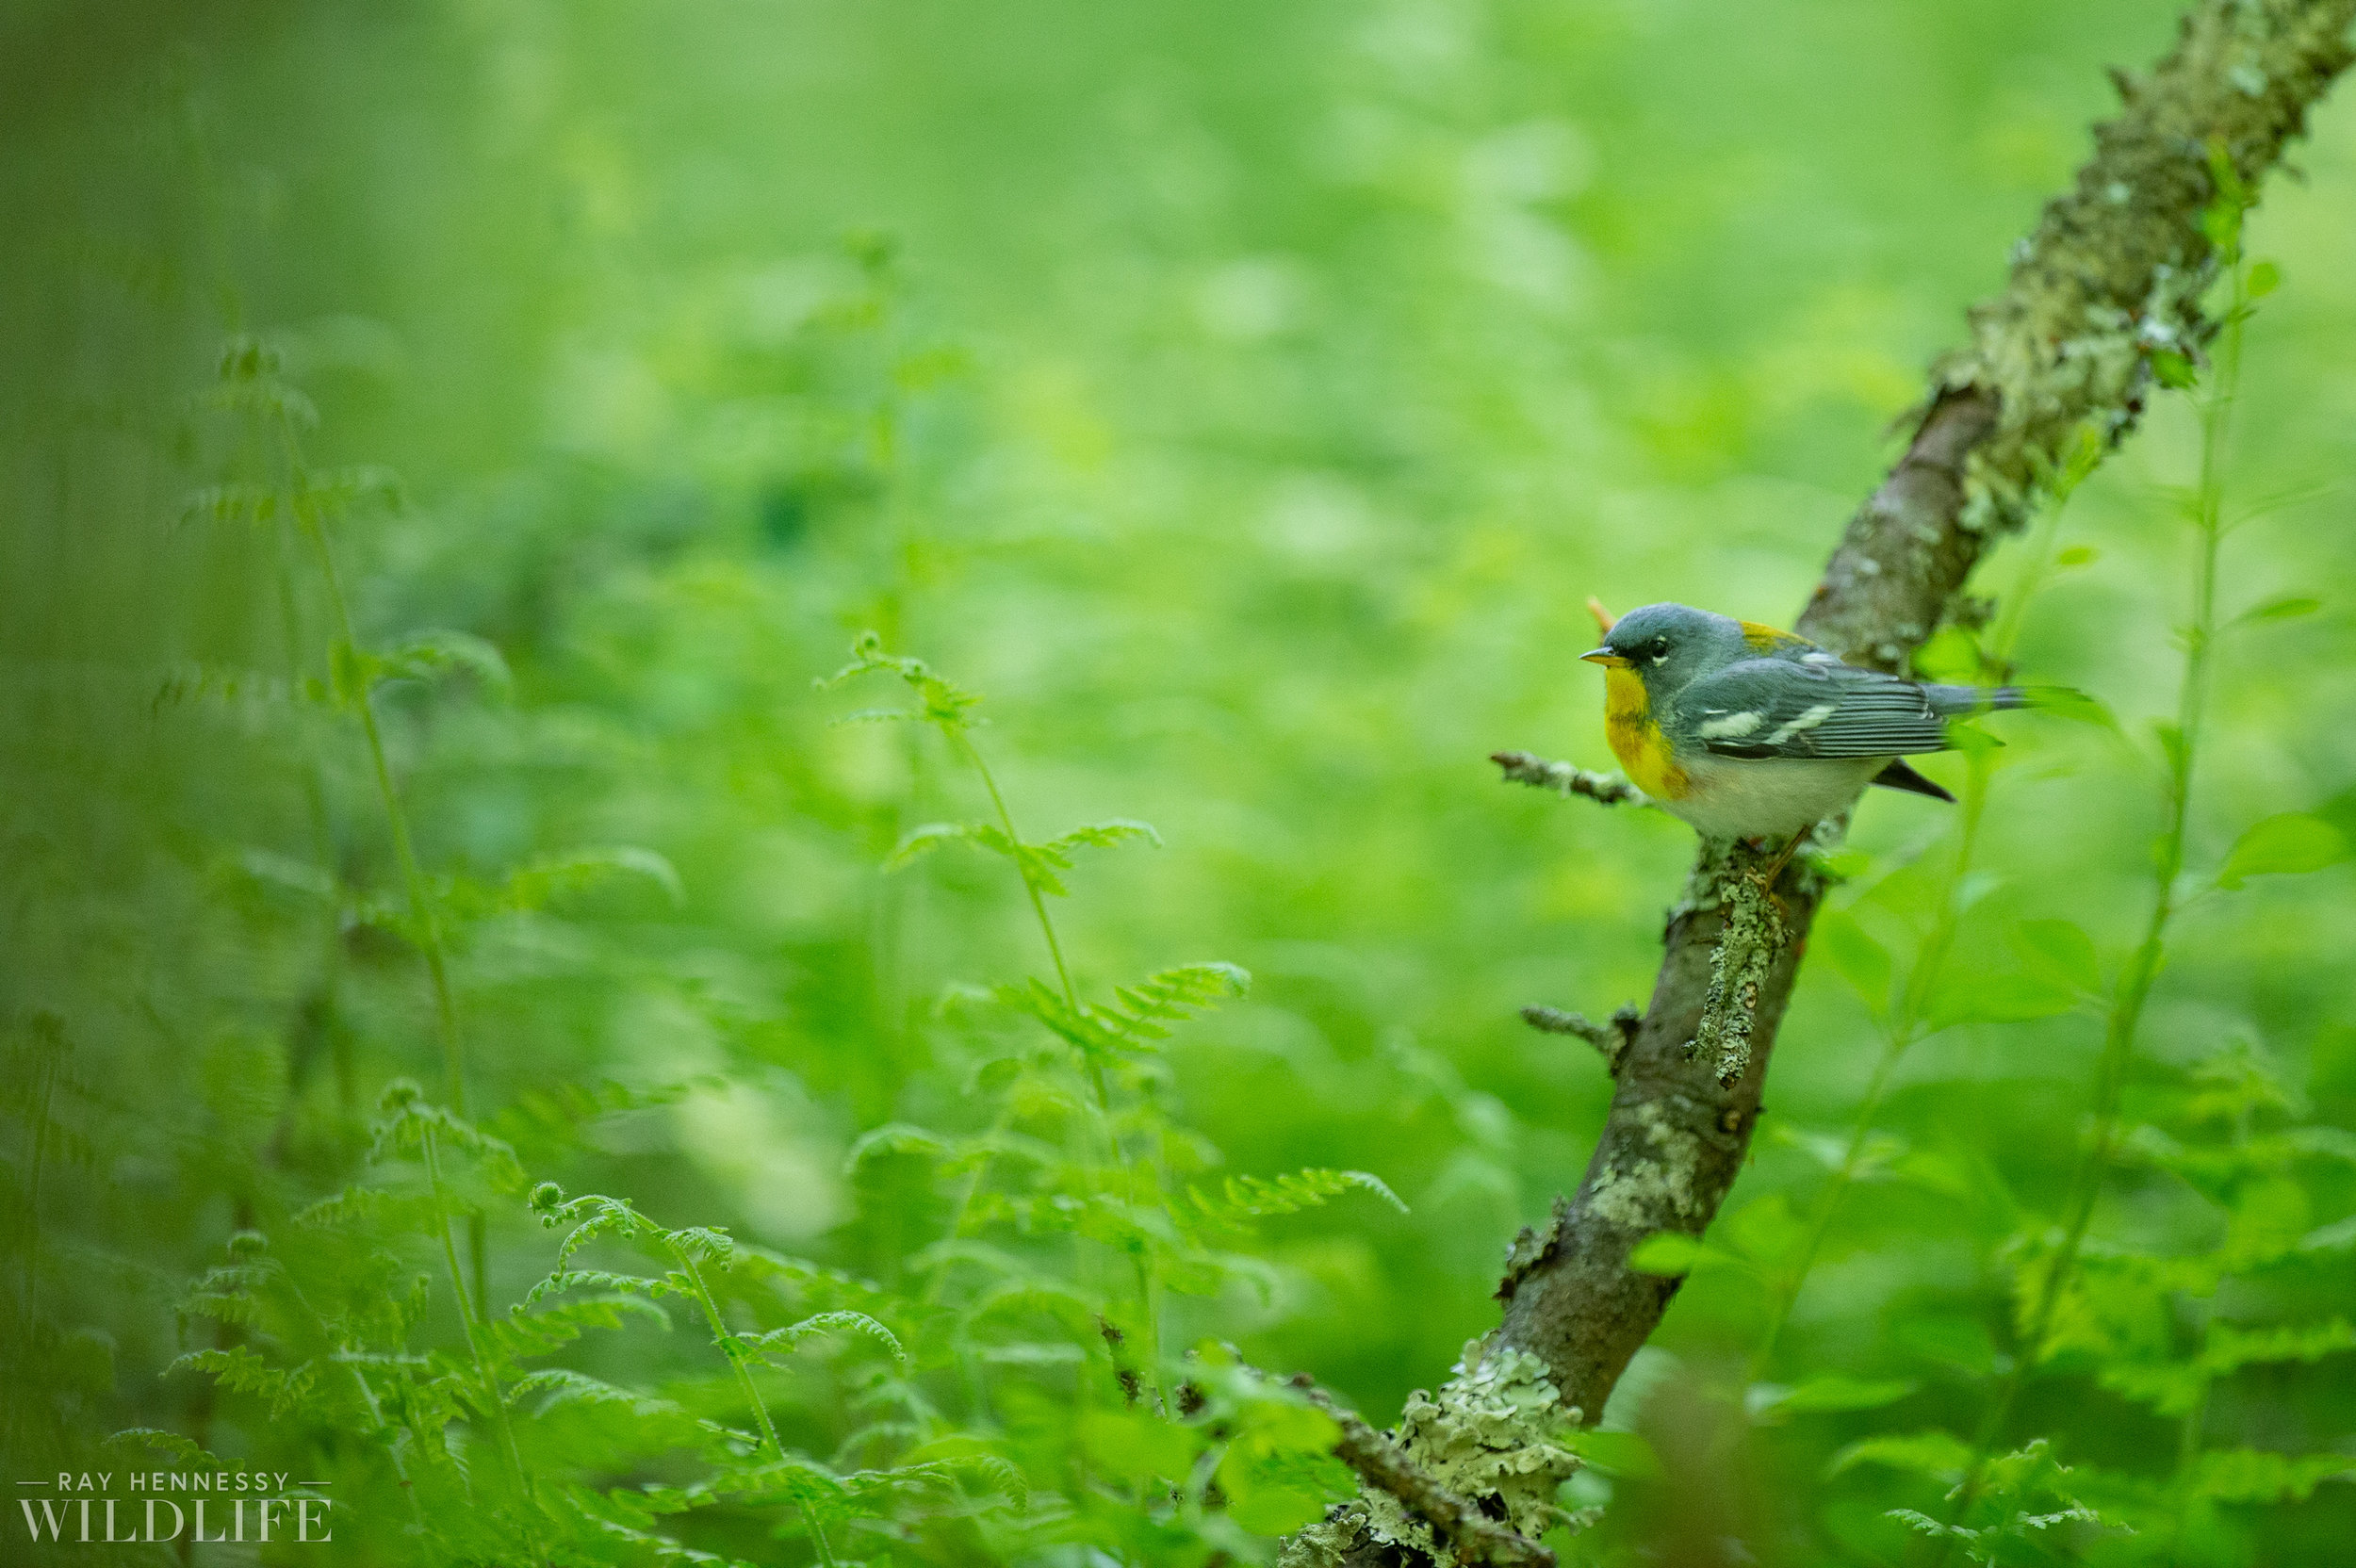 008_nothern-new-jersey-warblers.jpg